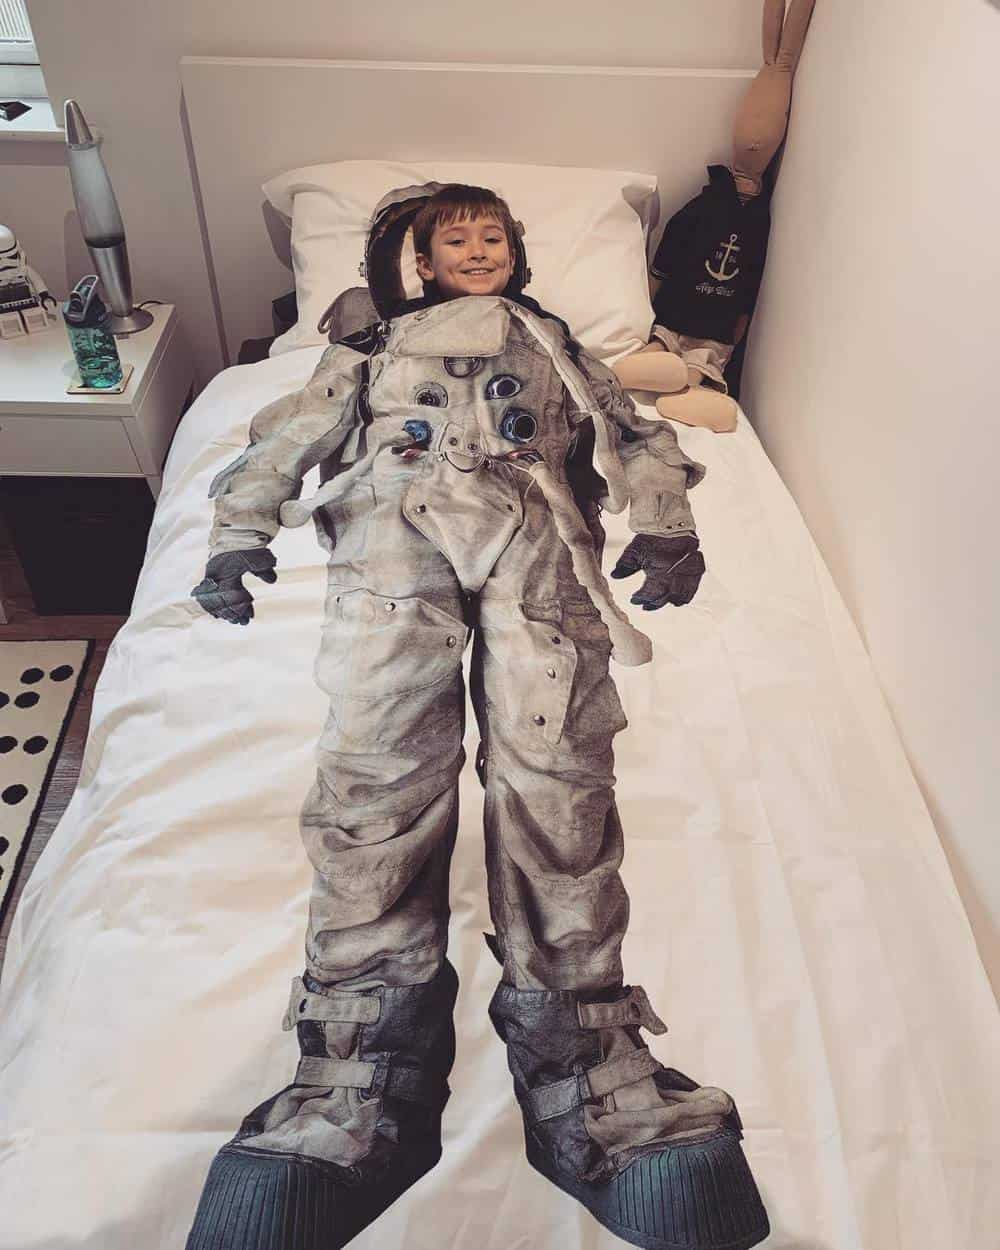 Space Themed Bedroom - Astronaut Bedding and bedsheet